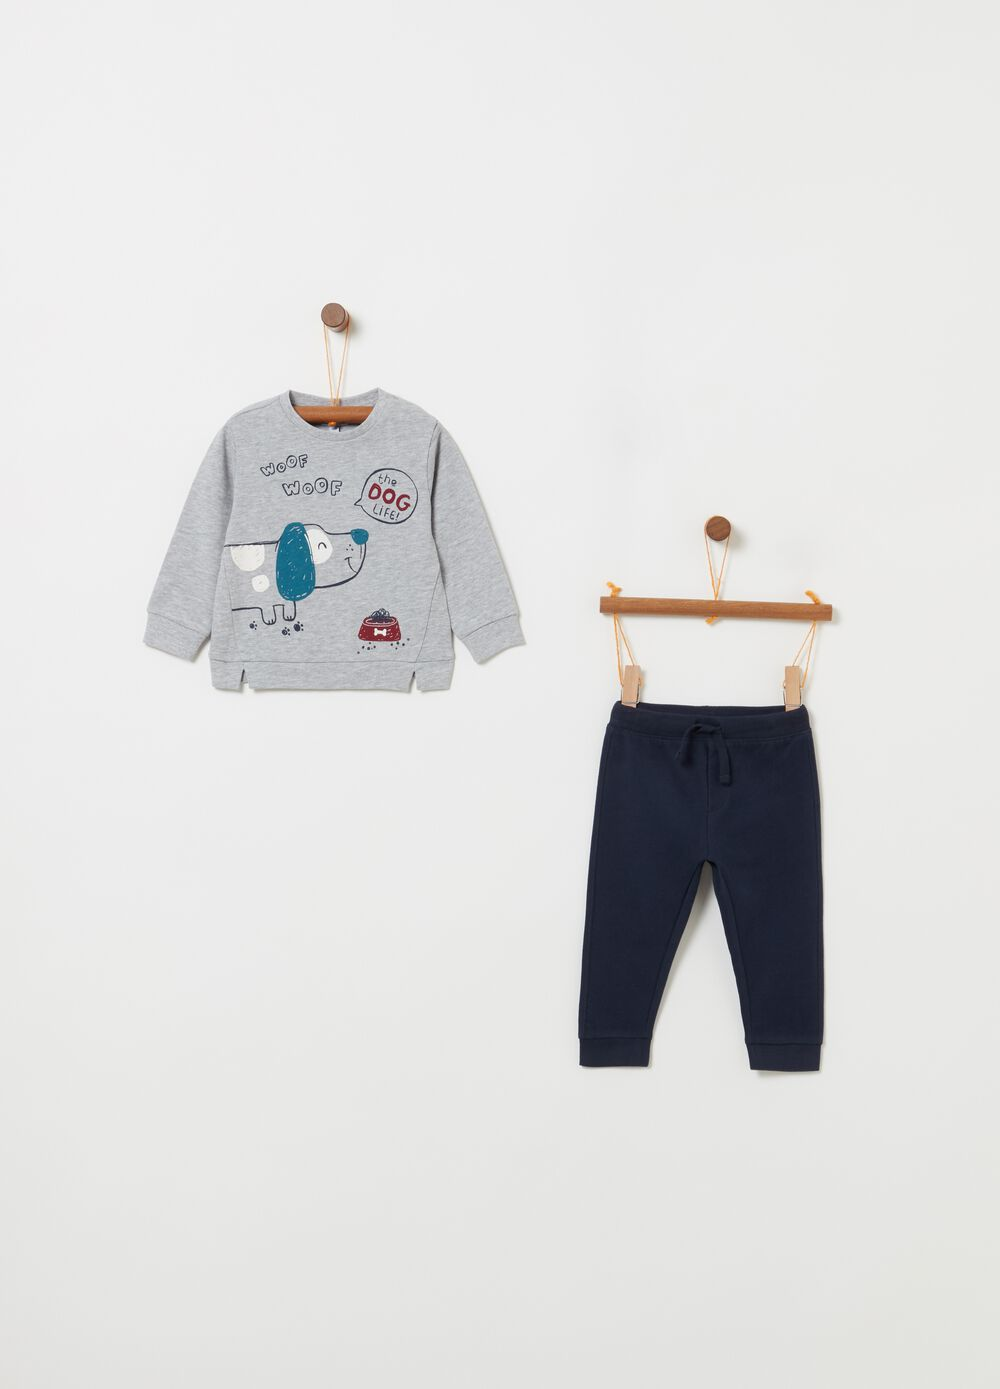 Jogging set with top and trousers with puppy print